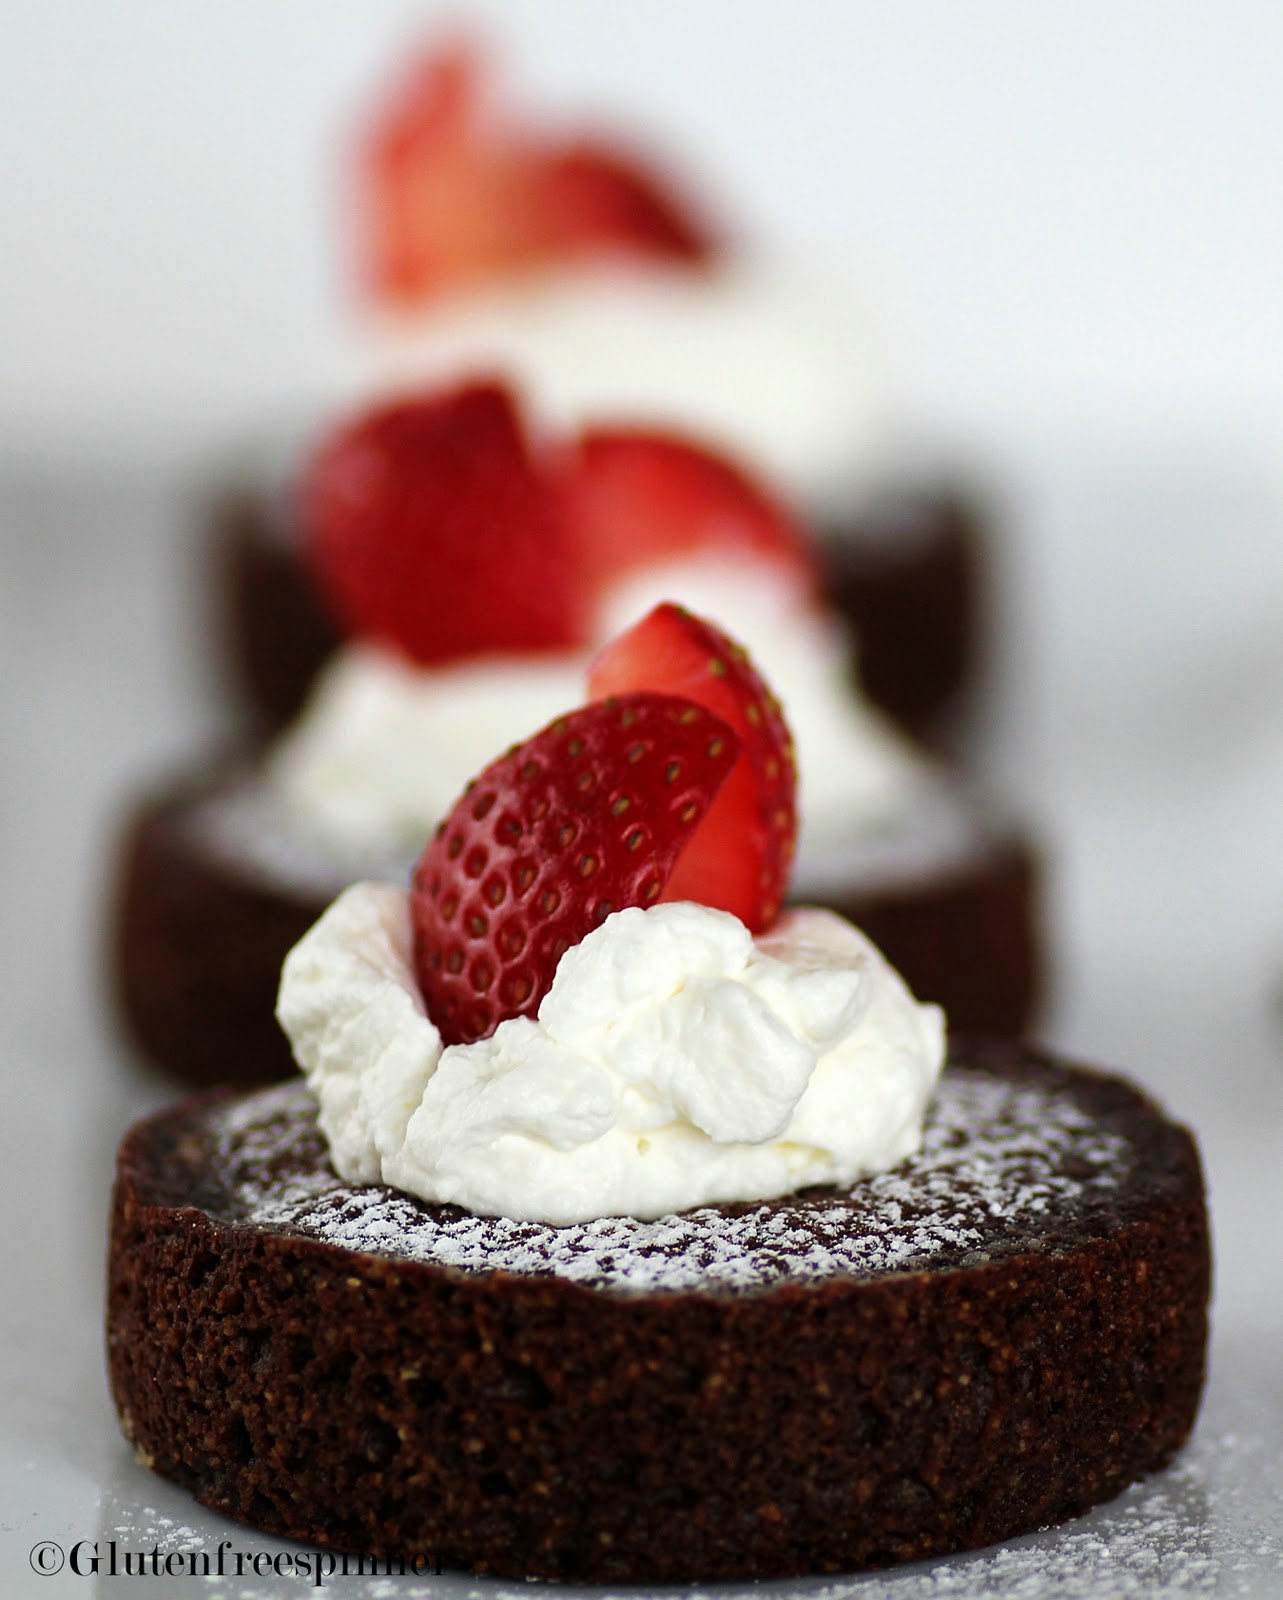 Gluten-Free Chocolate Financiers